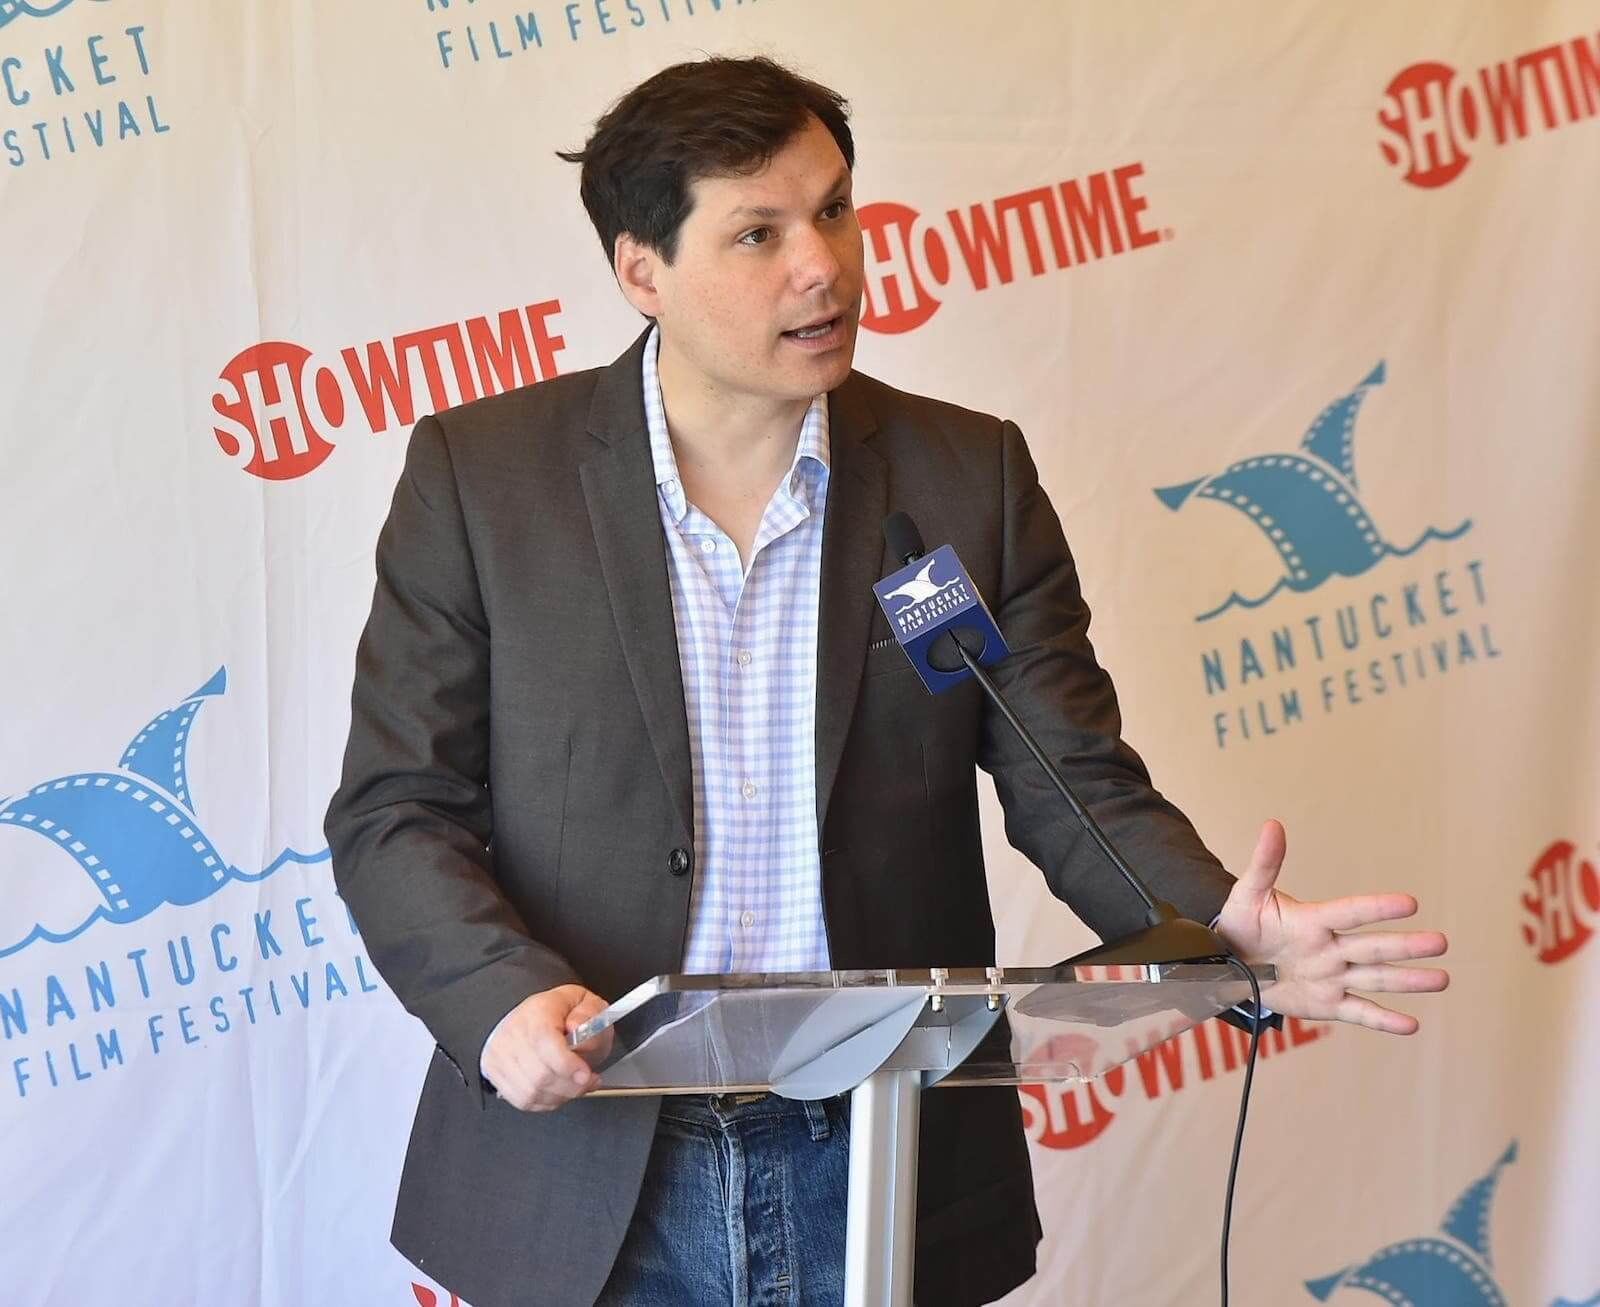 Nantucket Film Festival - Screenplay Competition - StudioBinder